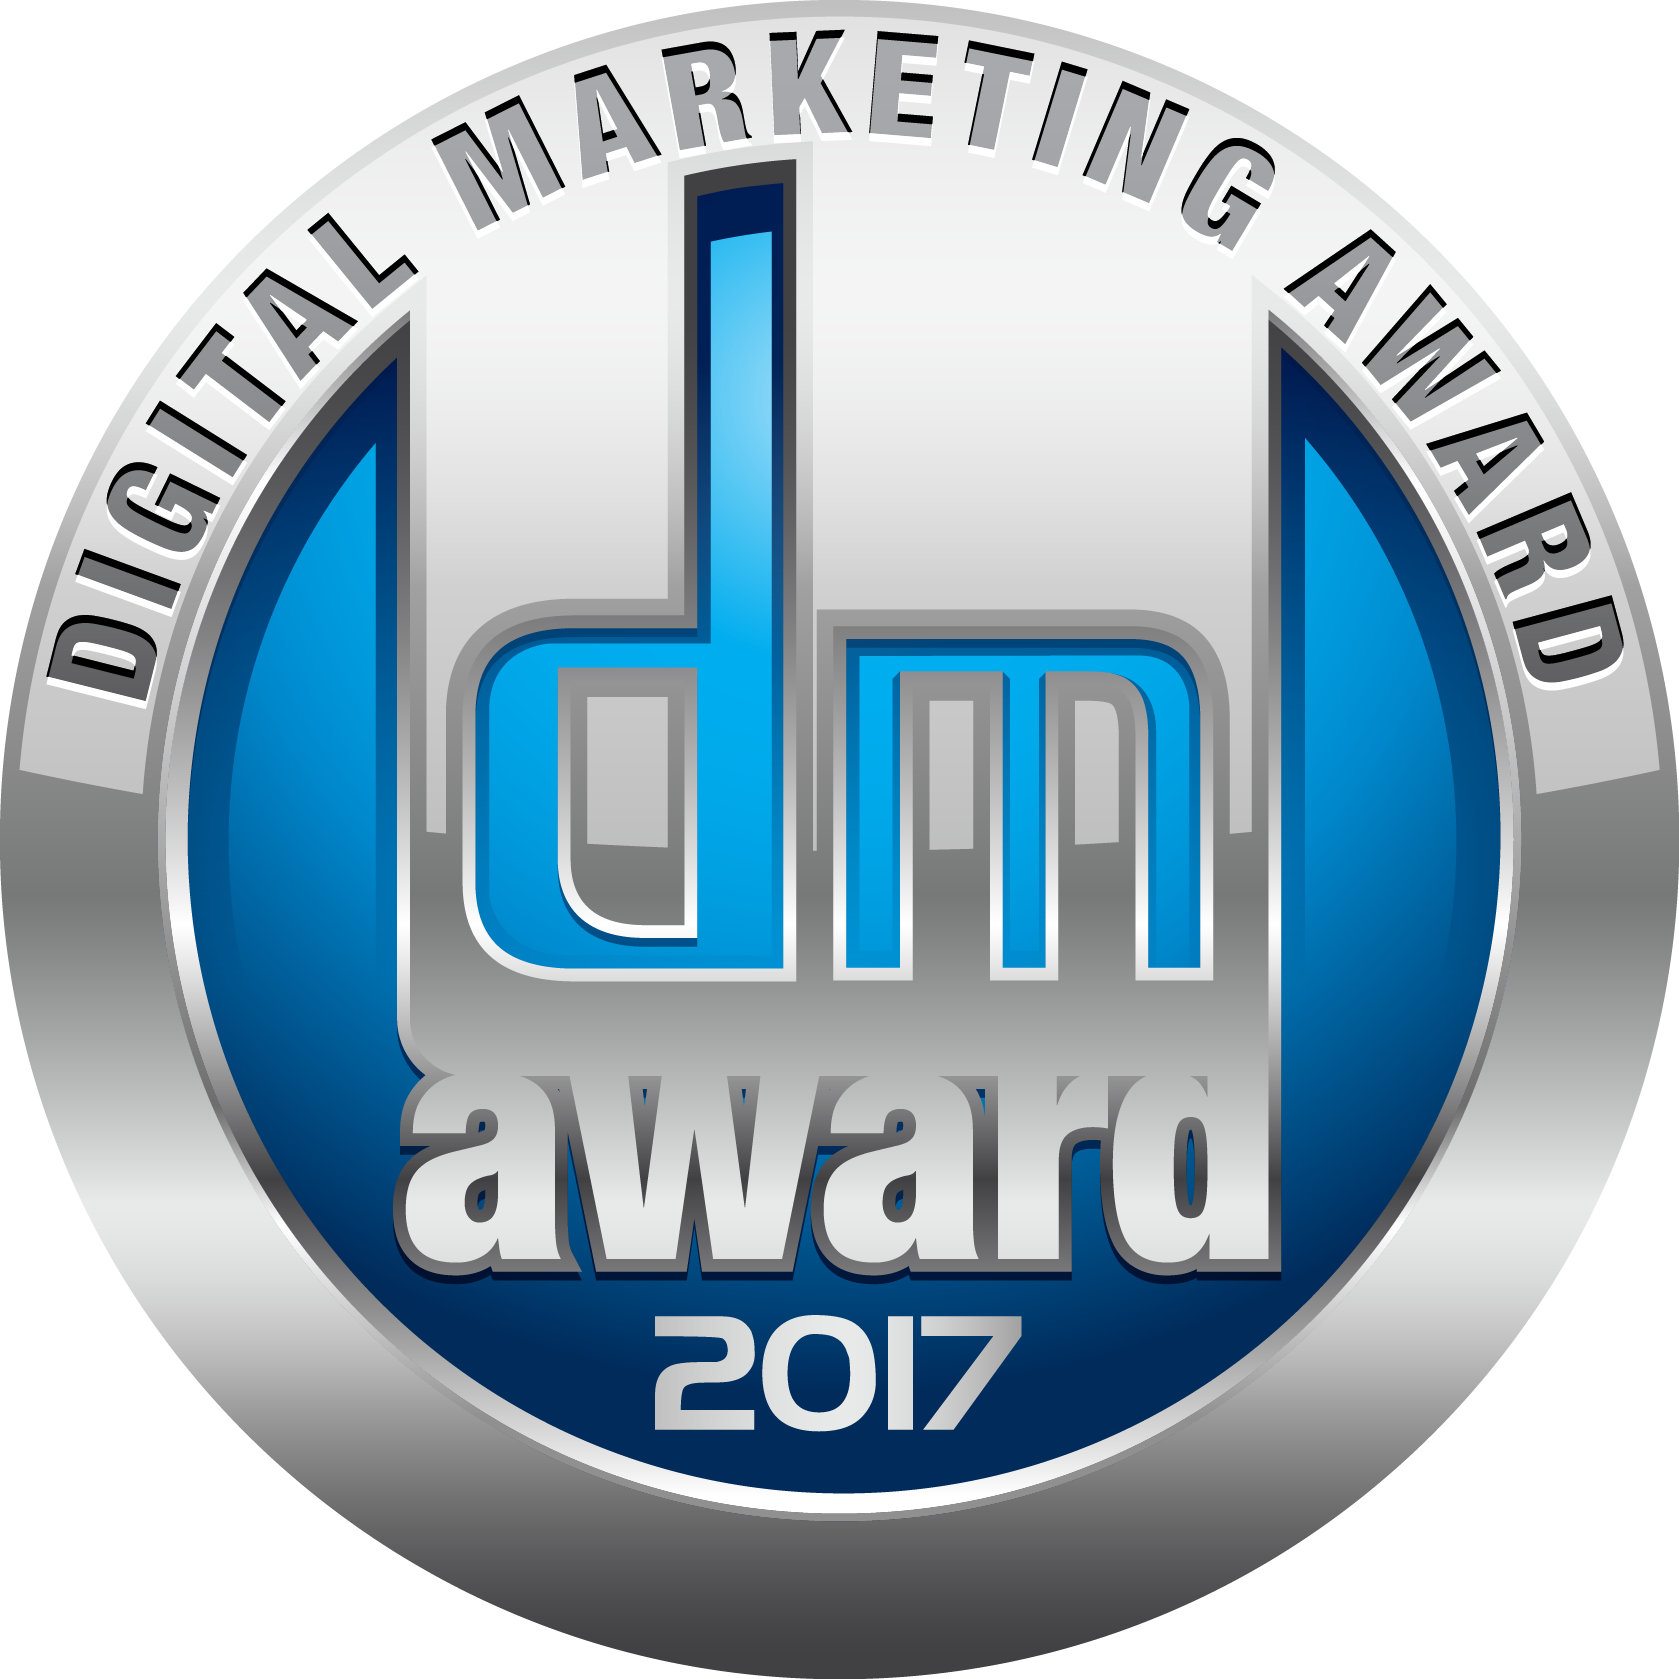 Image reward Digital Marketing Award